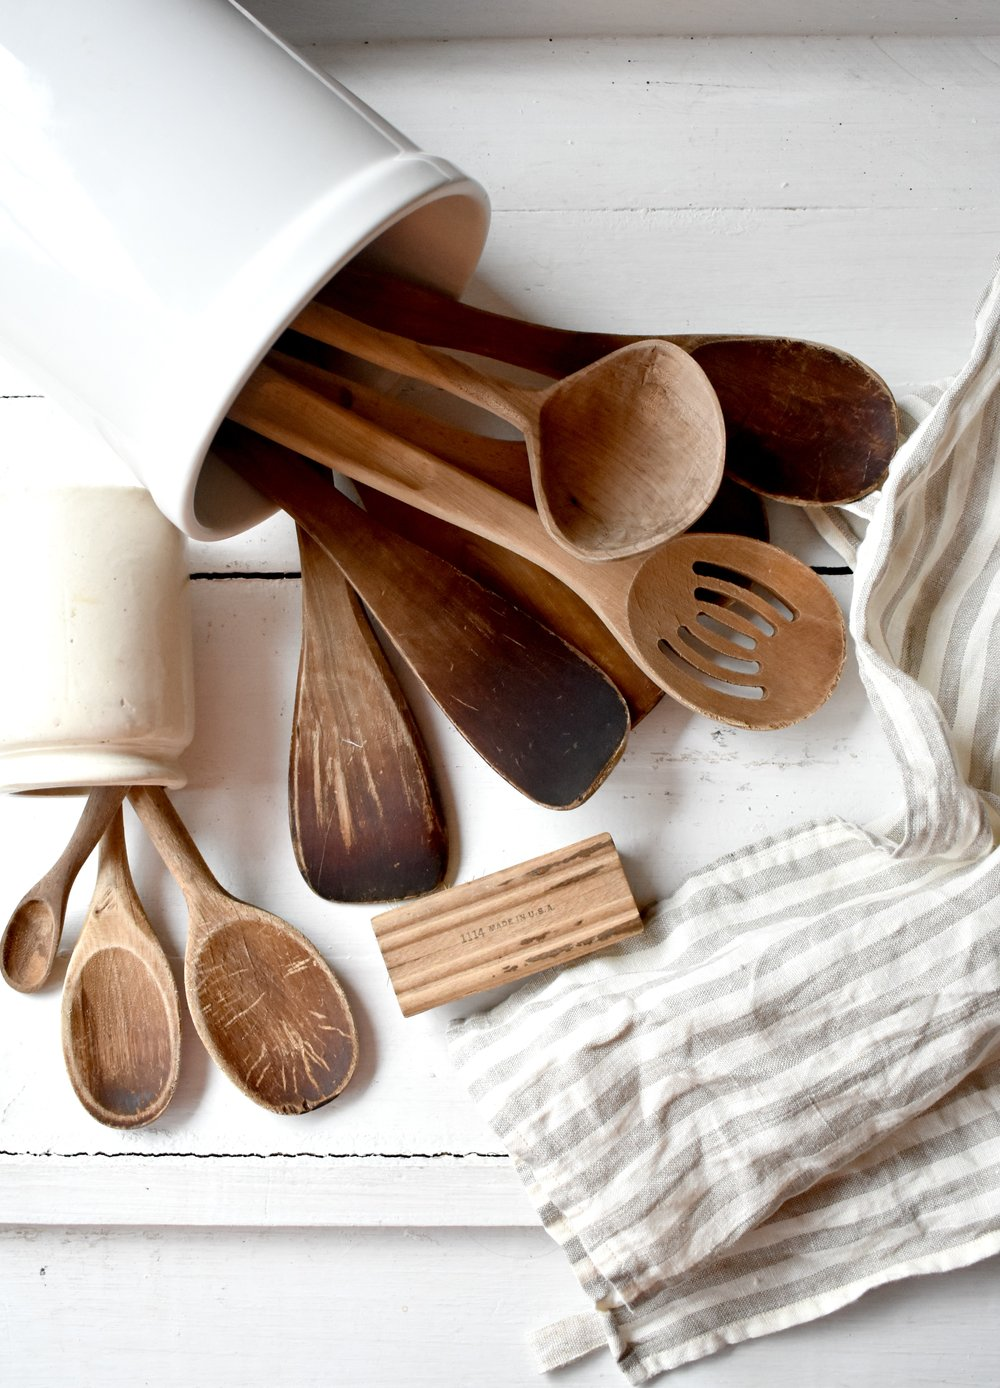 Wood utenils in a white crock